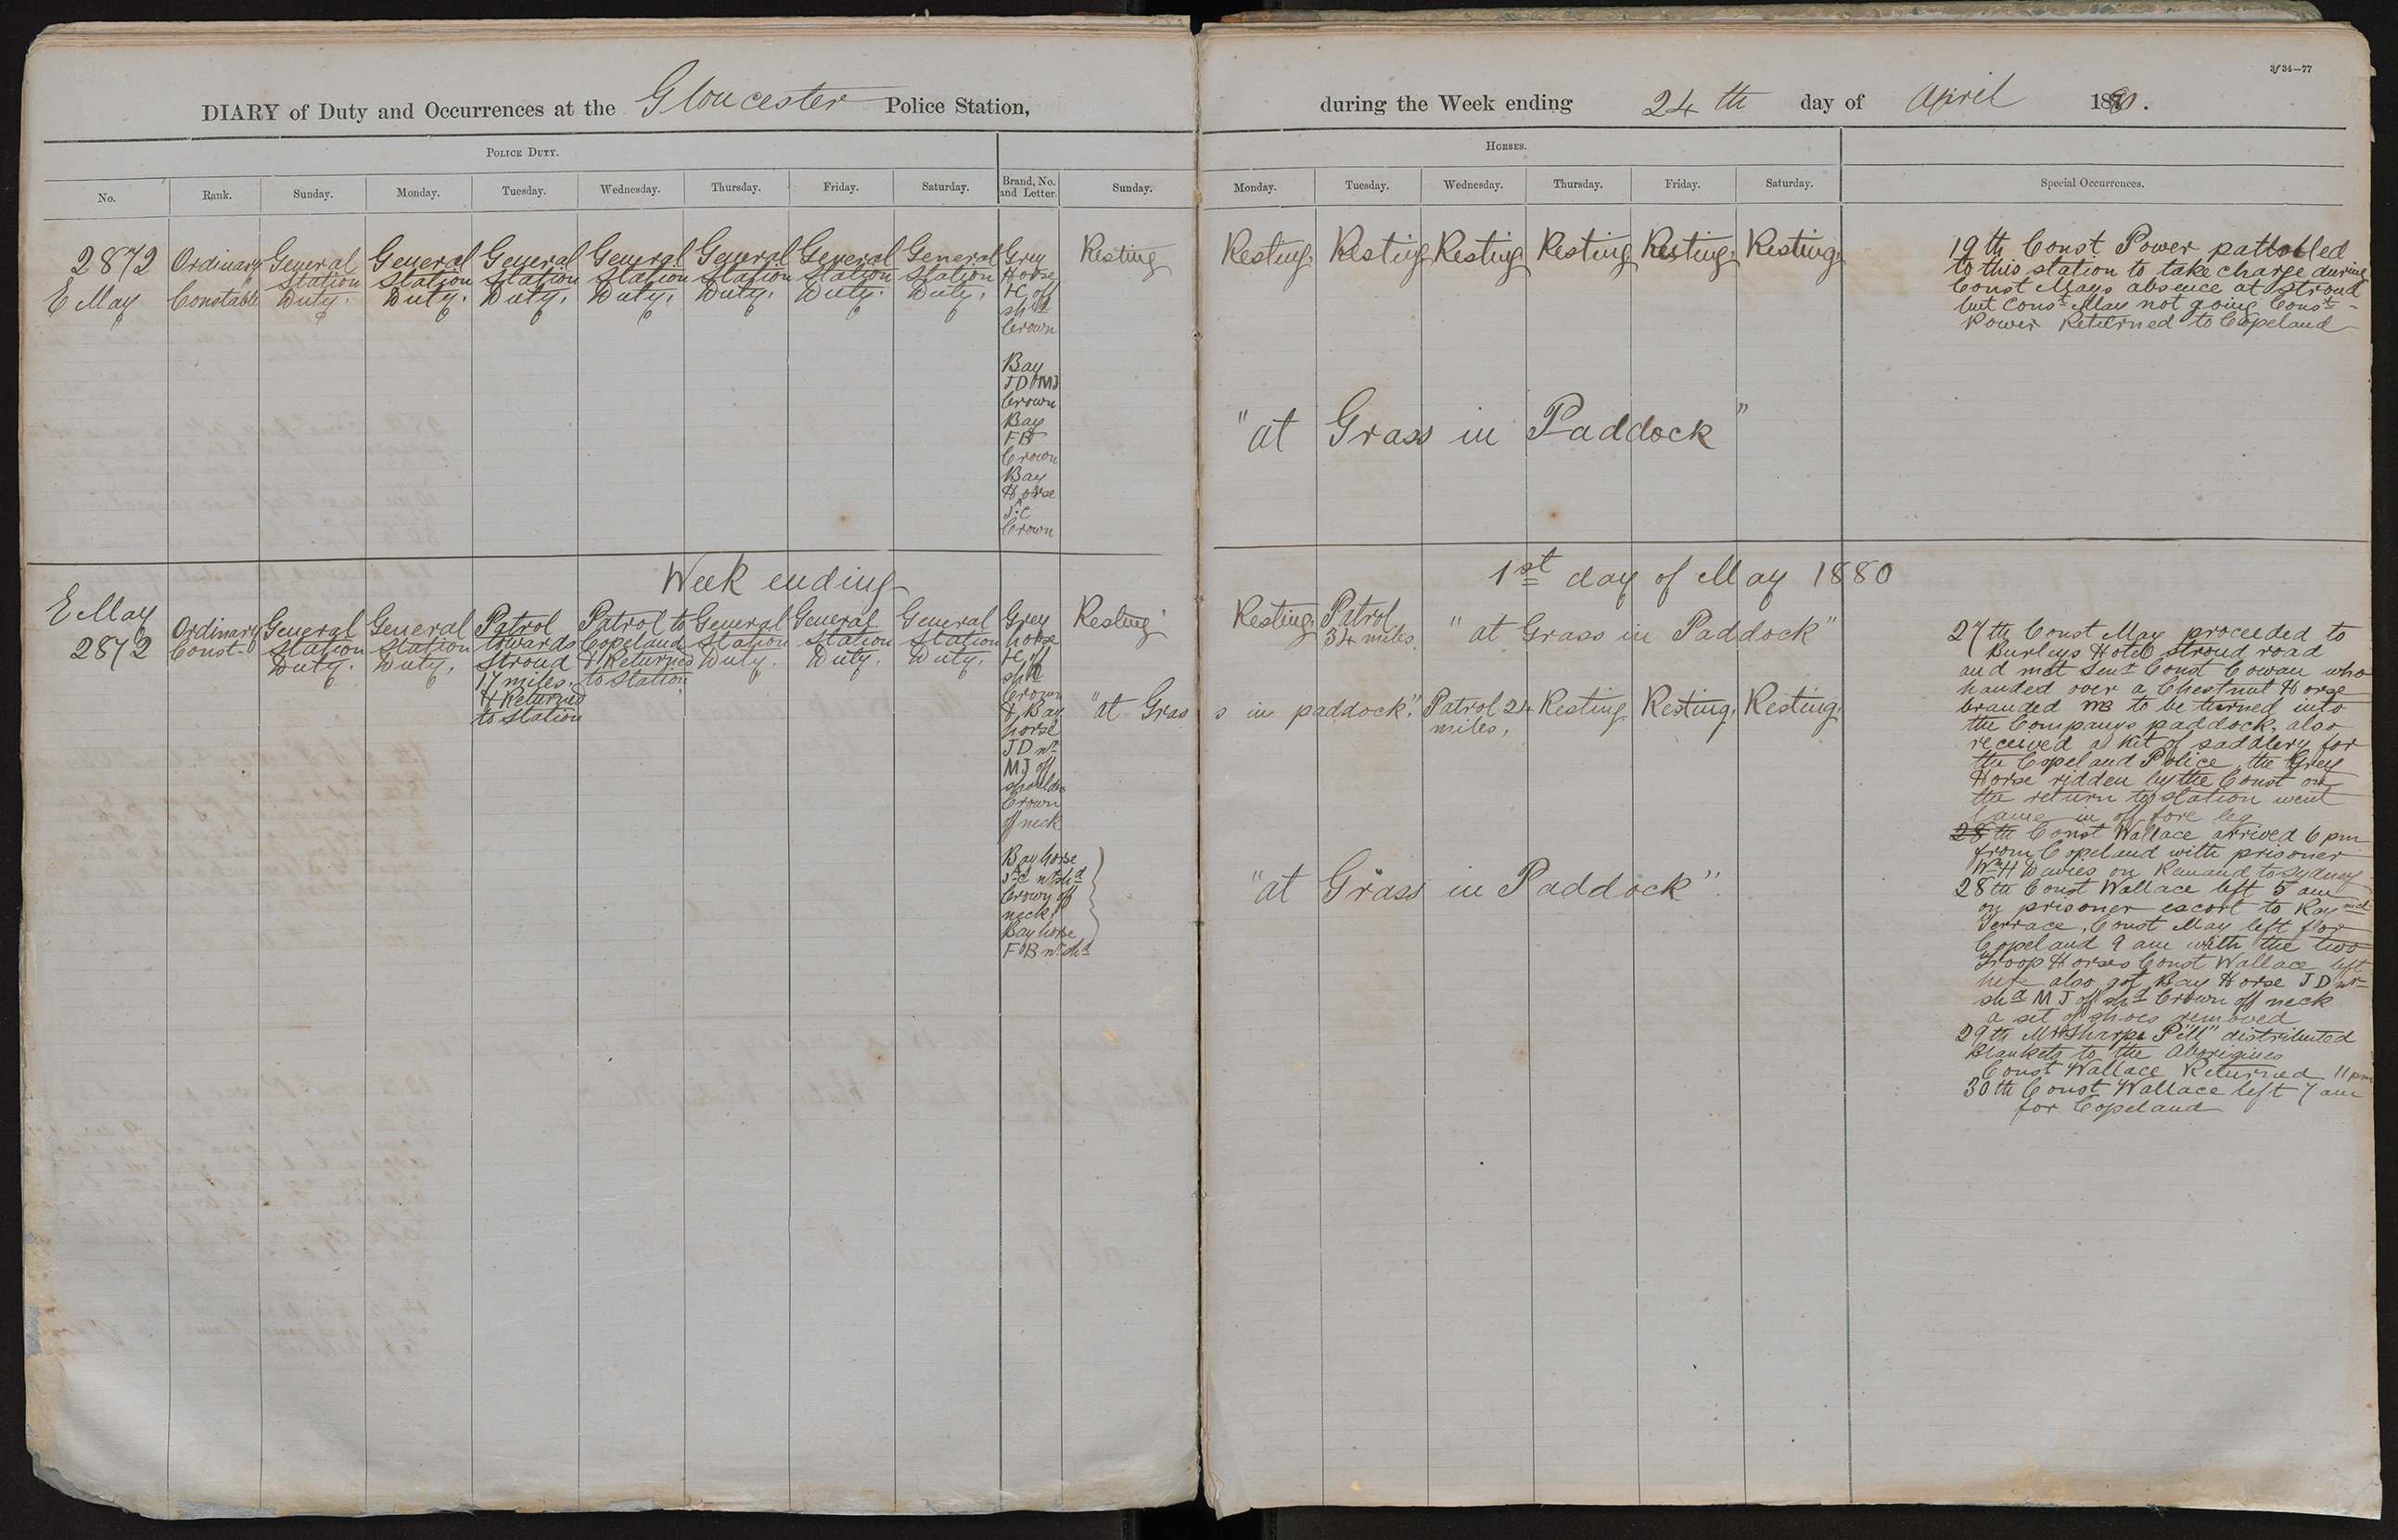 Diary of duty and occurrences at the Gloucester Police Station during the week ending the 24th day of April 1880